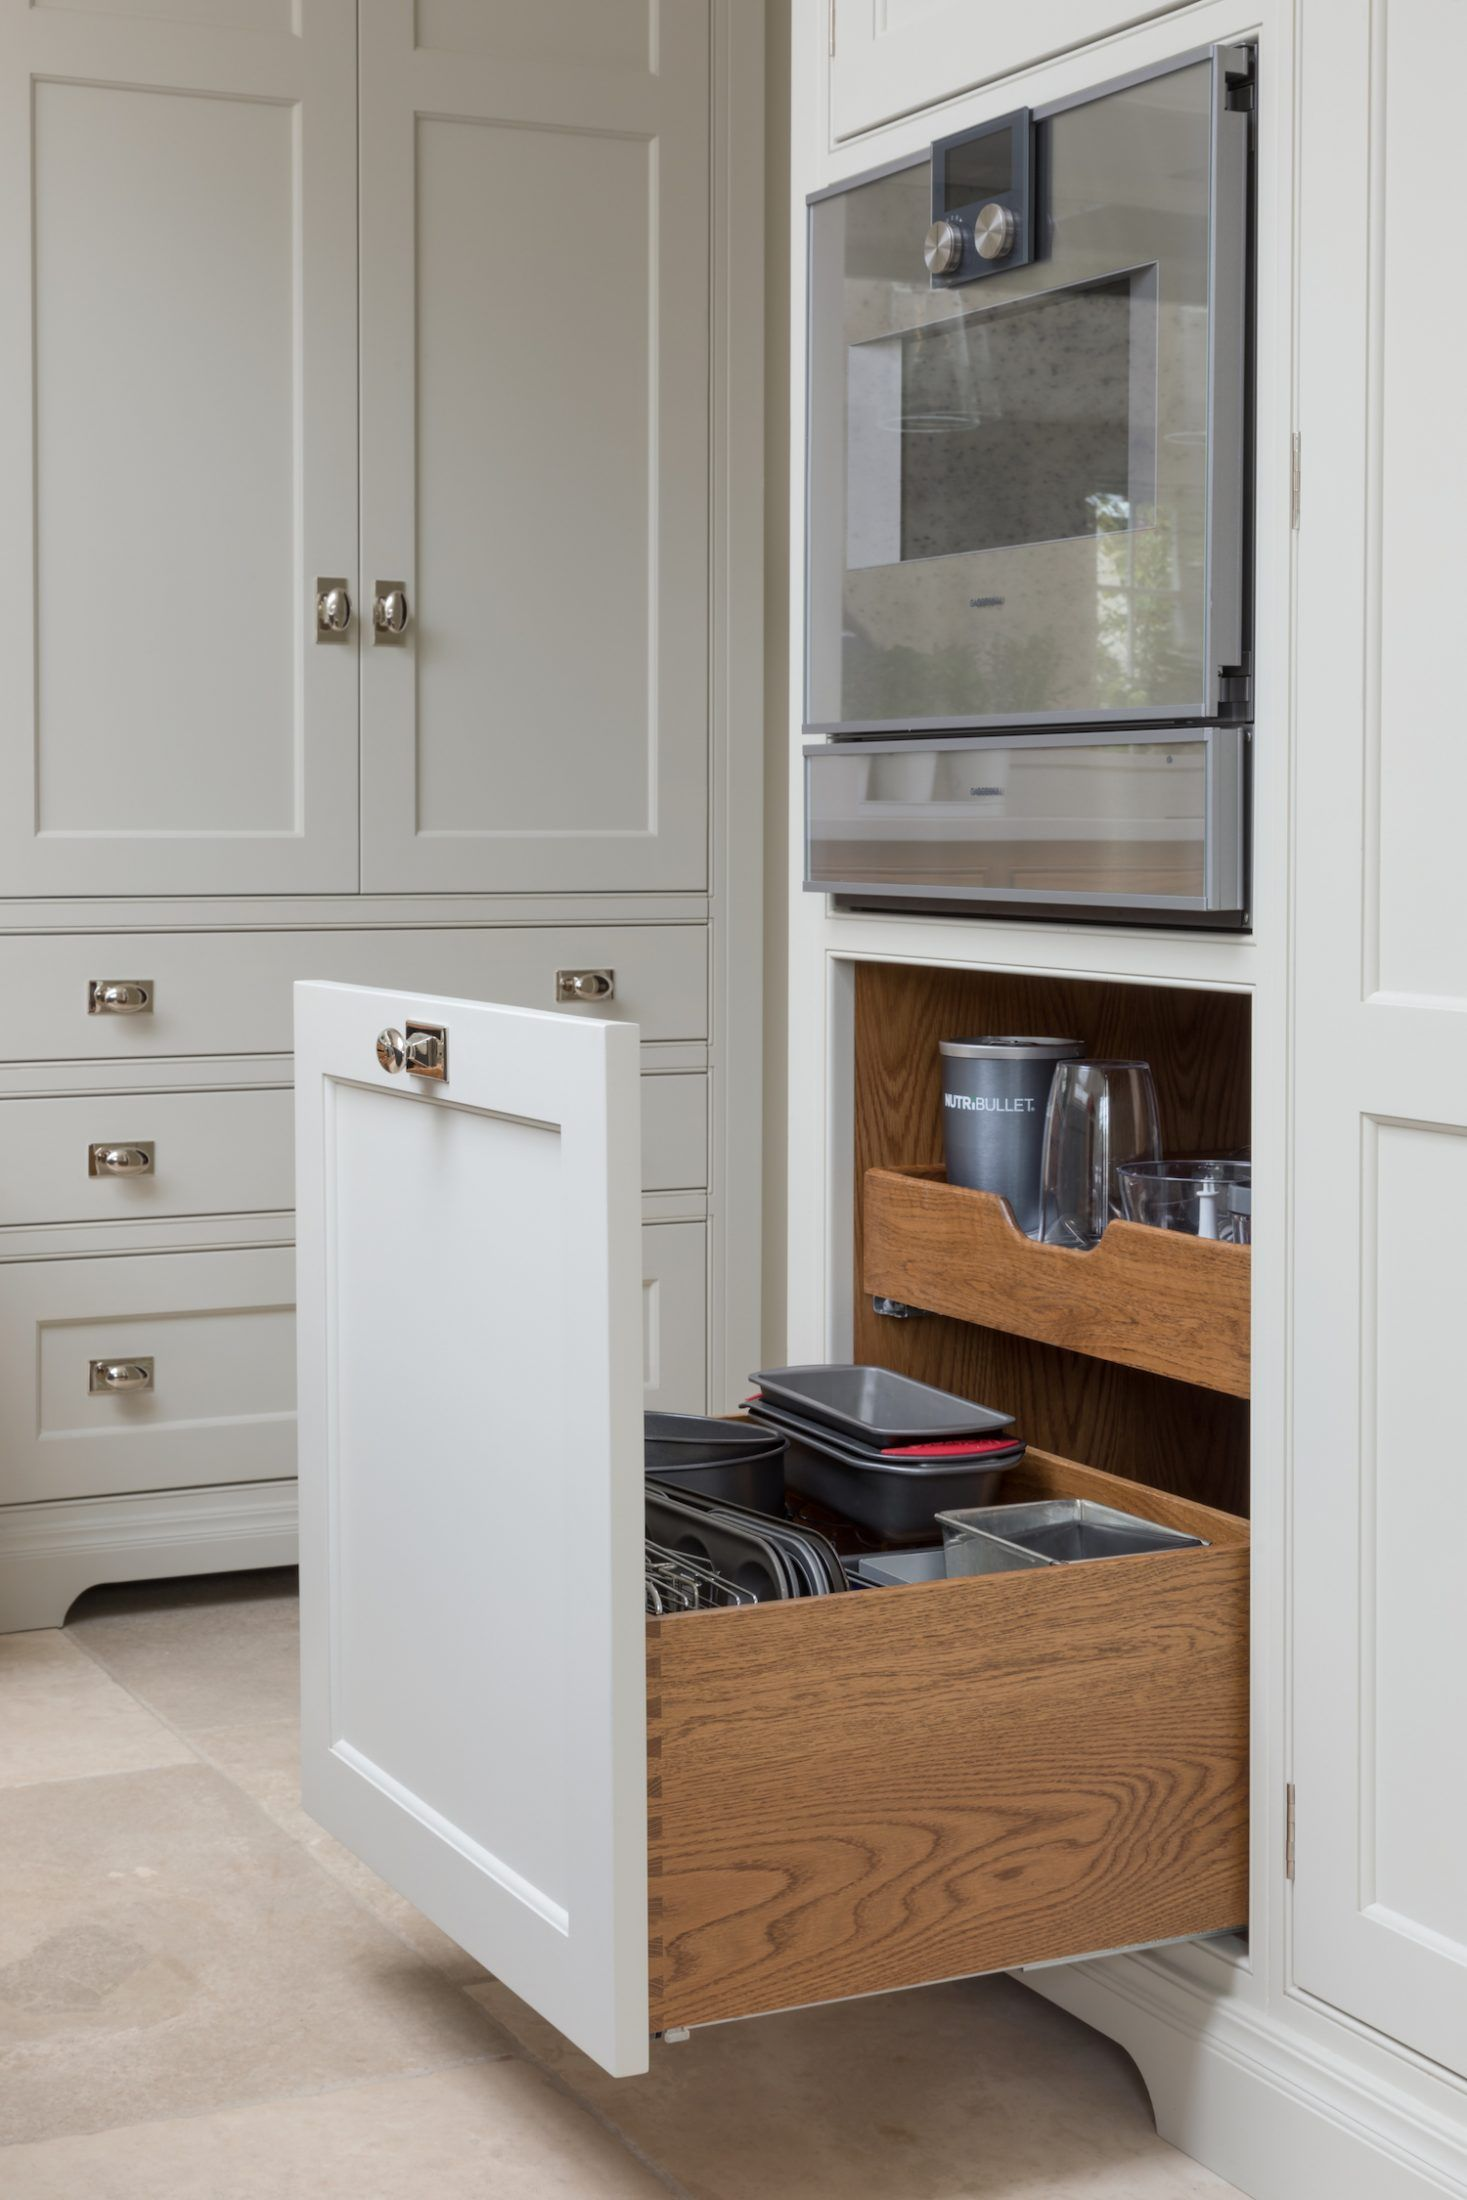 Beneath The Warming Drawer Is A Pot Cupboard That Opens Out With Plenty Of Deep Storage For Baking Trays Kitchen Remodel Kitchen Cabinet Styles Family Kitchen